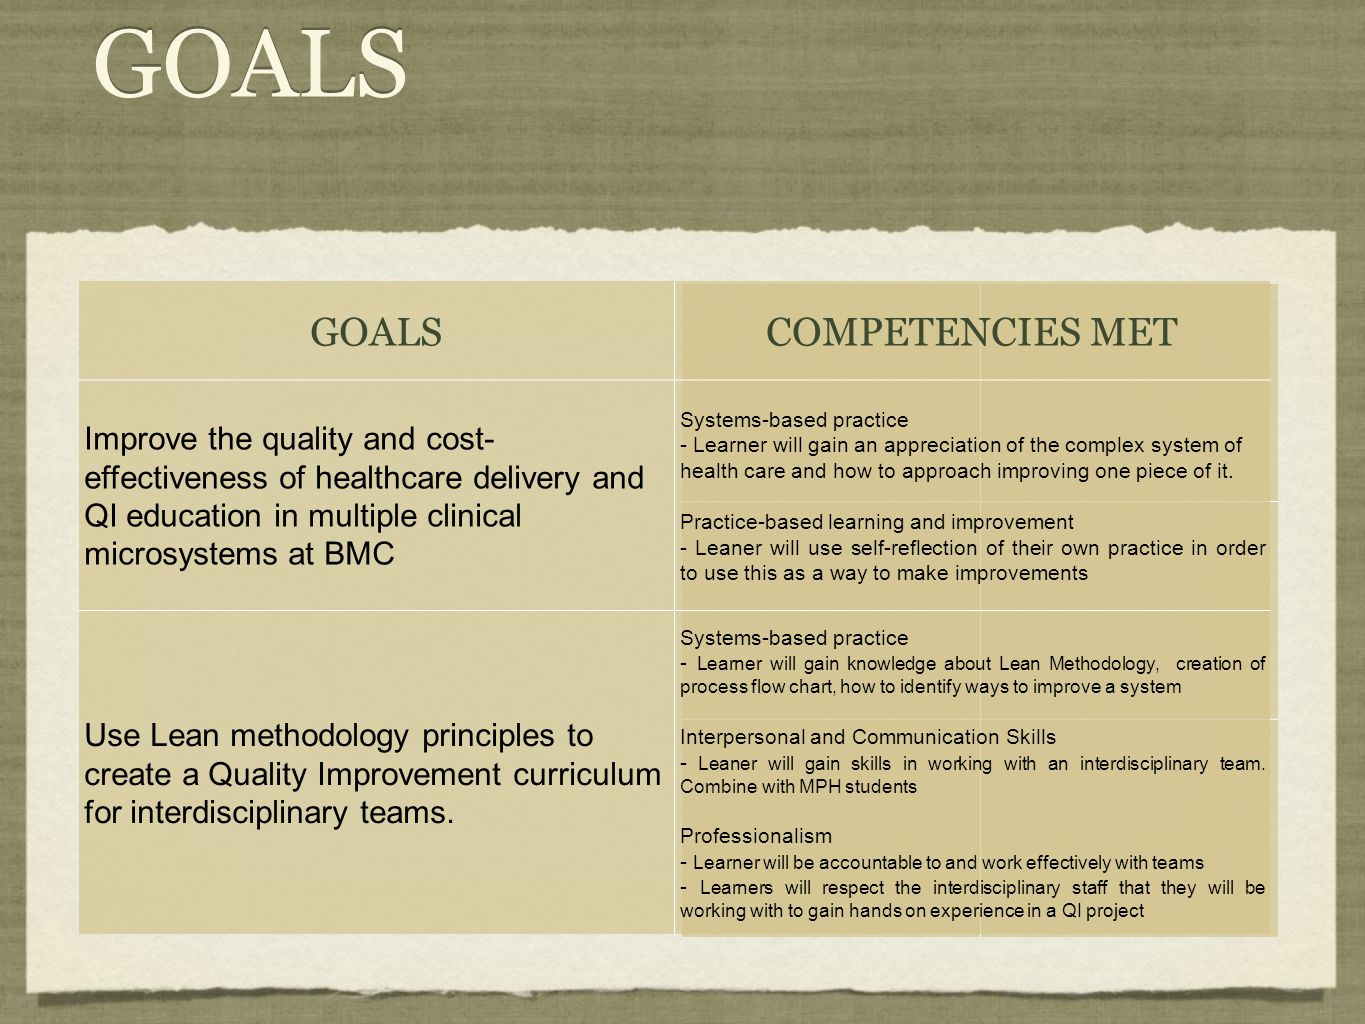 GOALS COMPETENCIES MET Improve the quality and cost- effectiveness of healthcare delivery and QI education in multiple clinical microsystems at BMC Sy